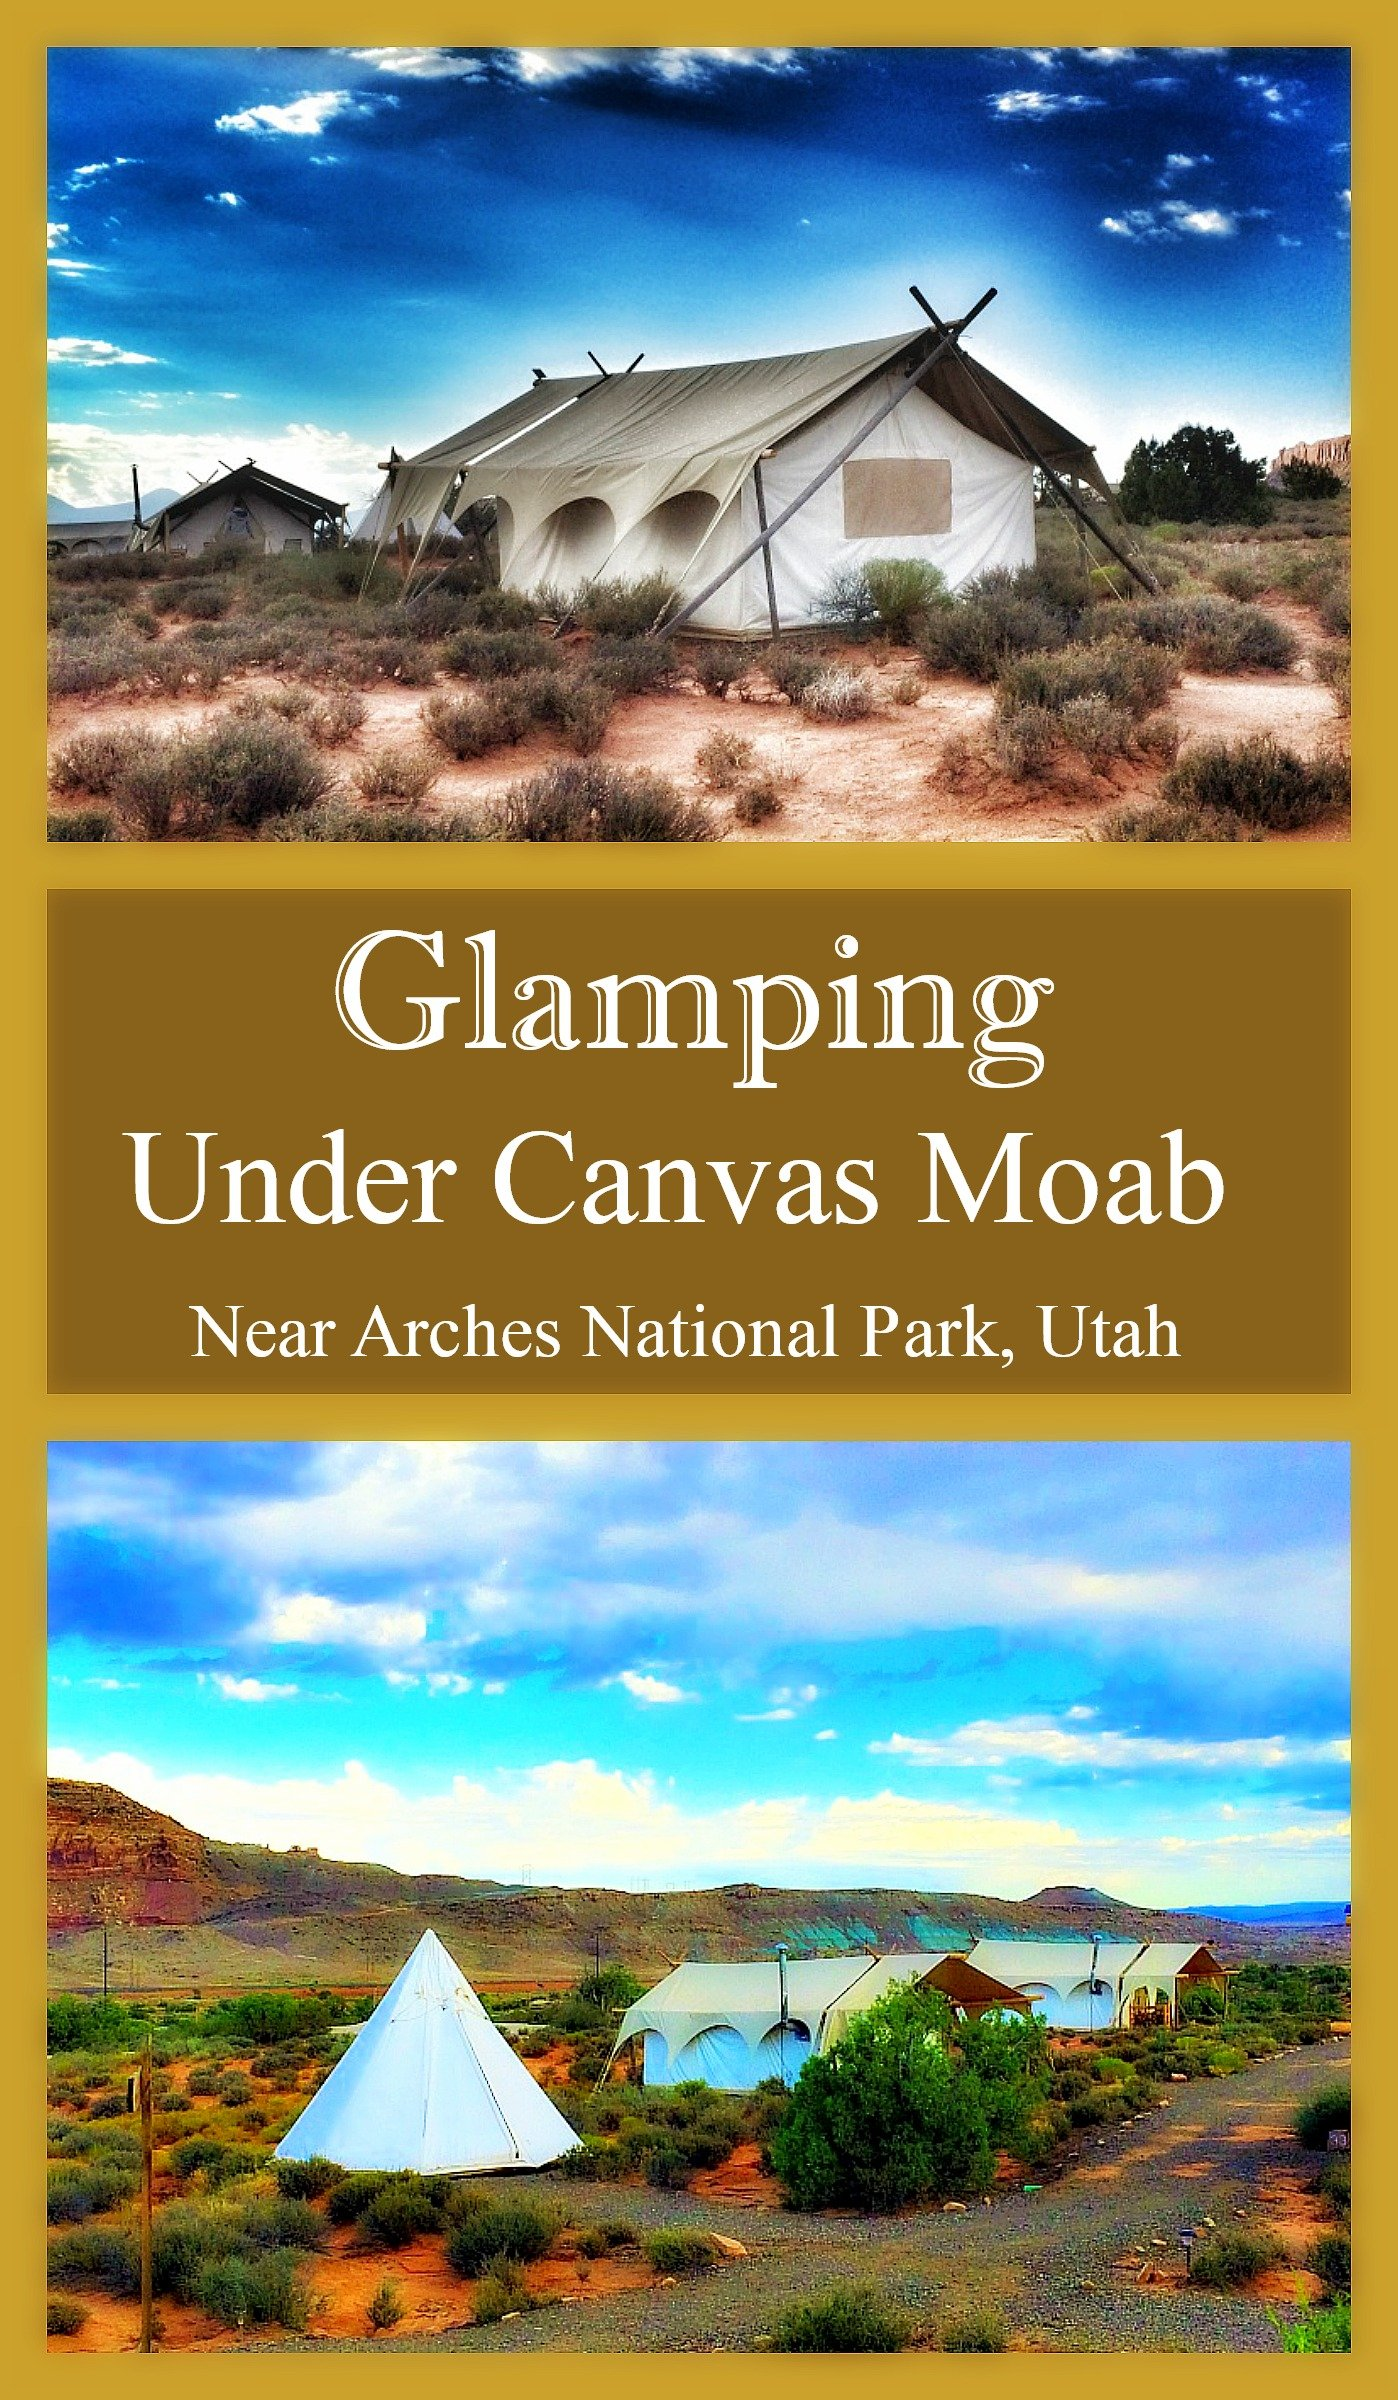 Traveling to Arches or Canyonlands National Park in Utah?  Try glamping Under Canvas Moab for a unique family tent lodging experience.